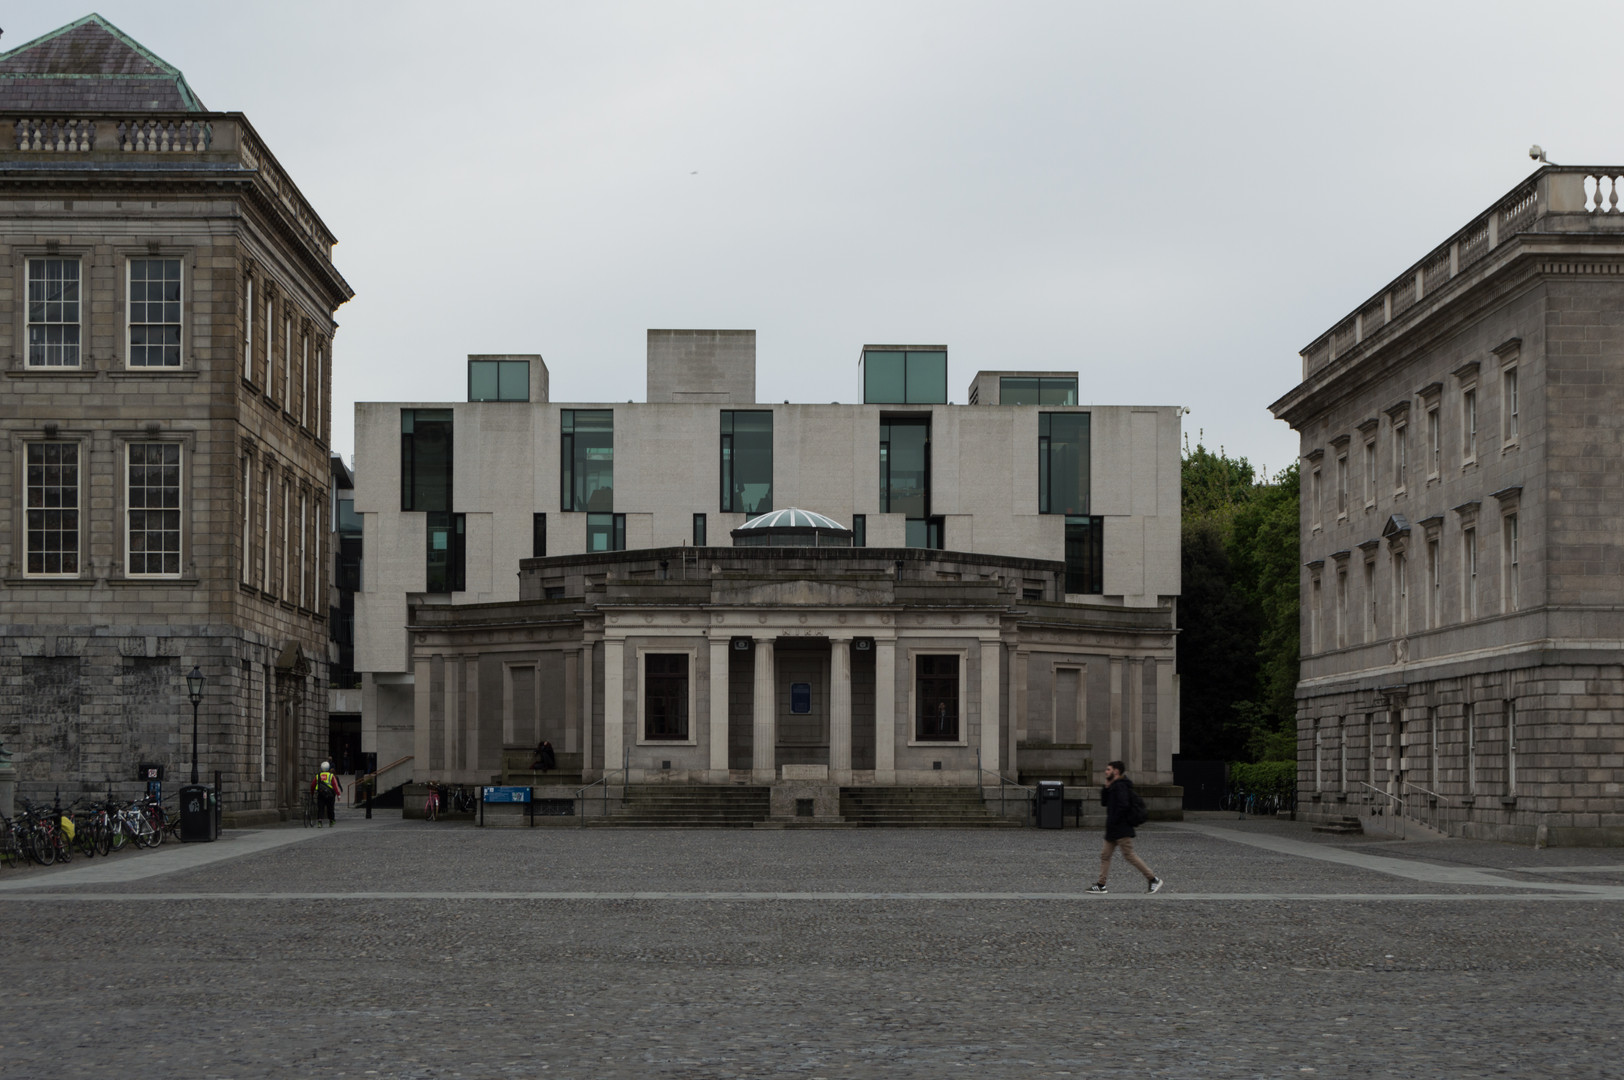 Granite slabbed and glazed facade of the Long Room Hub and surrounded by limestone buildings, Trinity College, Dublin,